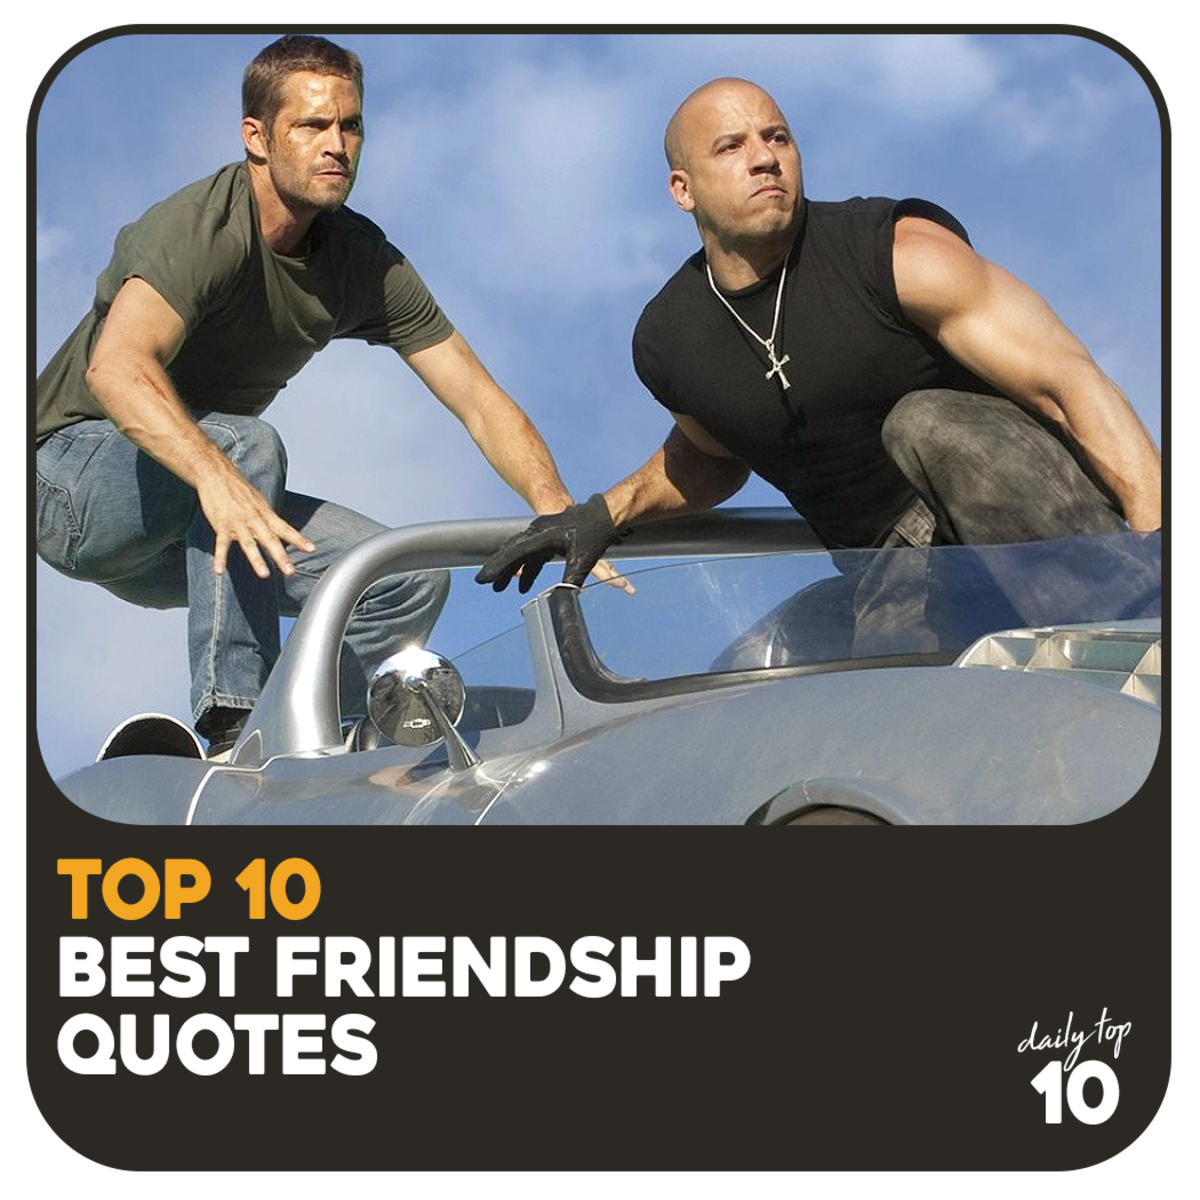 Top 10 Best Friendship Quotes Featuring Vin Diesel and Paul Walker and Other Real Celebrity Bestfriends (With Pictures)